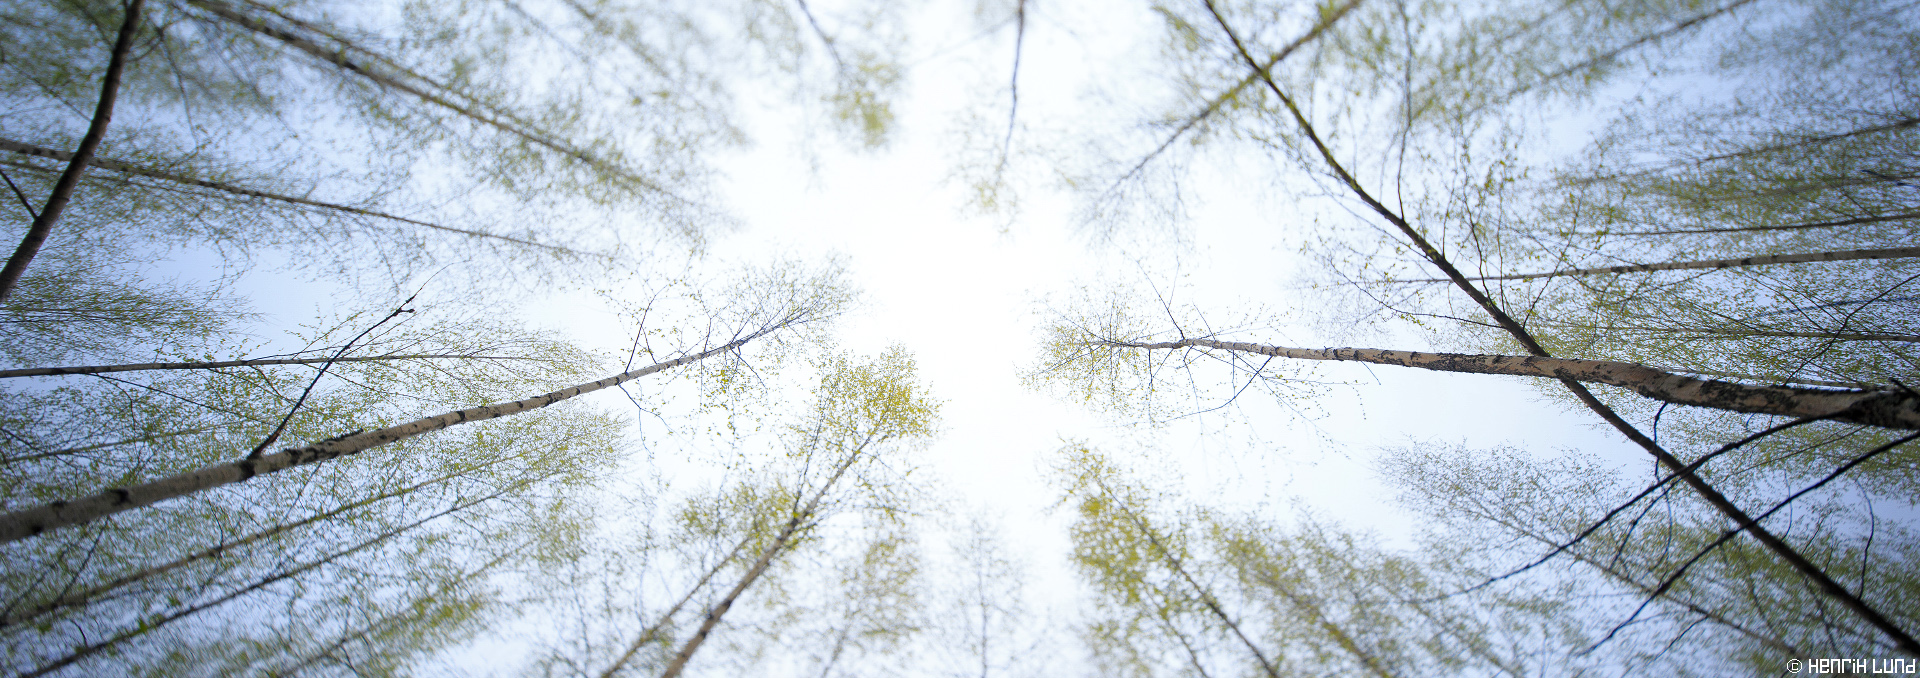 Birch forest panorama in early spring. Norrby, Lappträsk, Finland, May 2015.